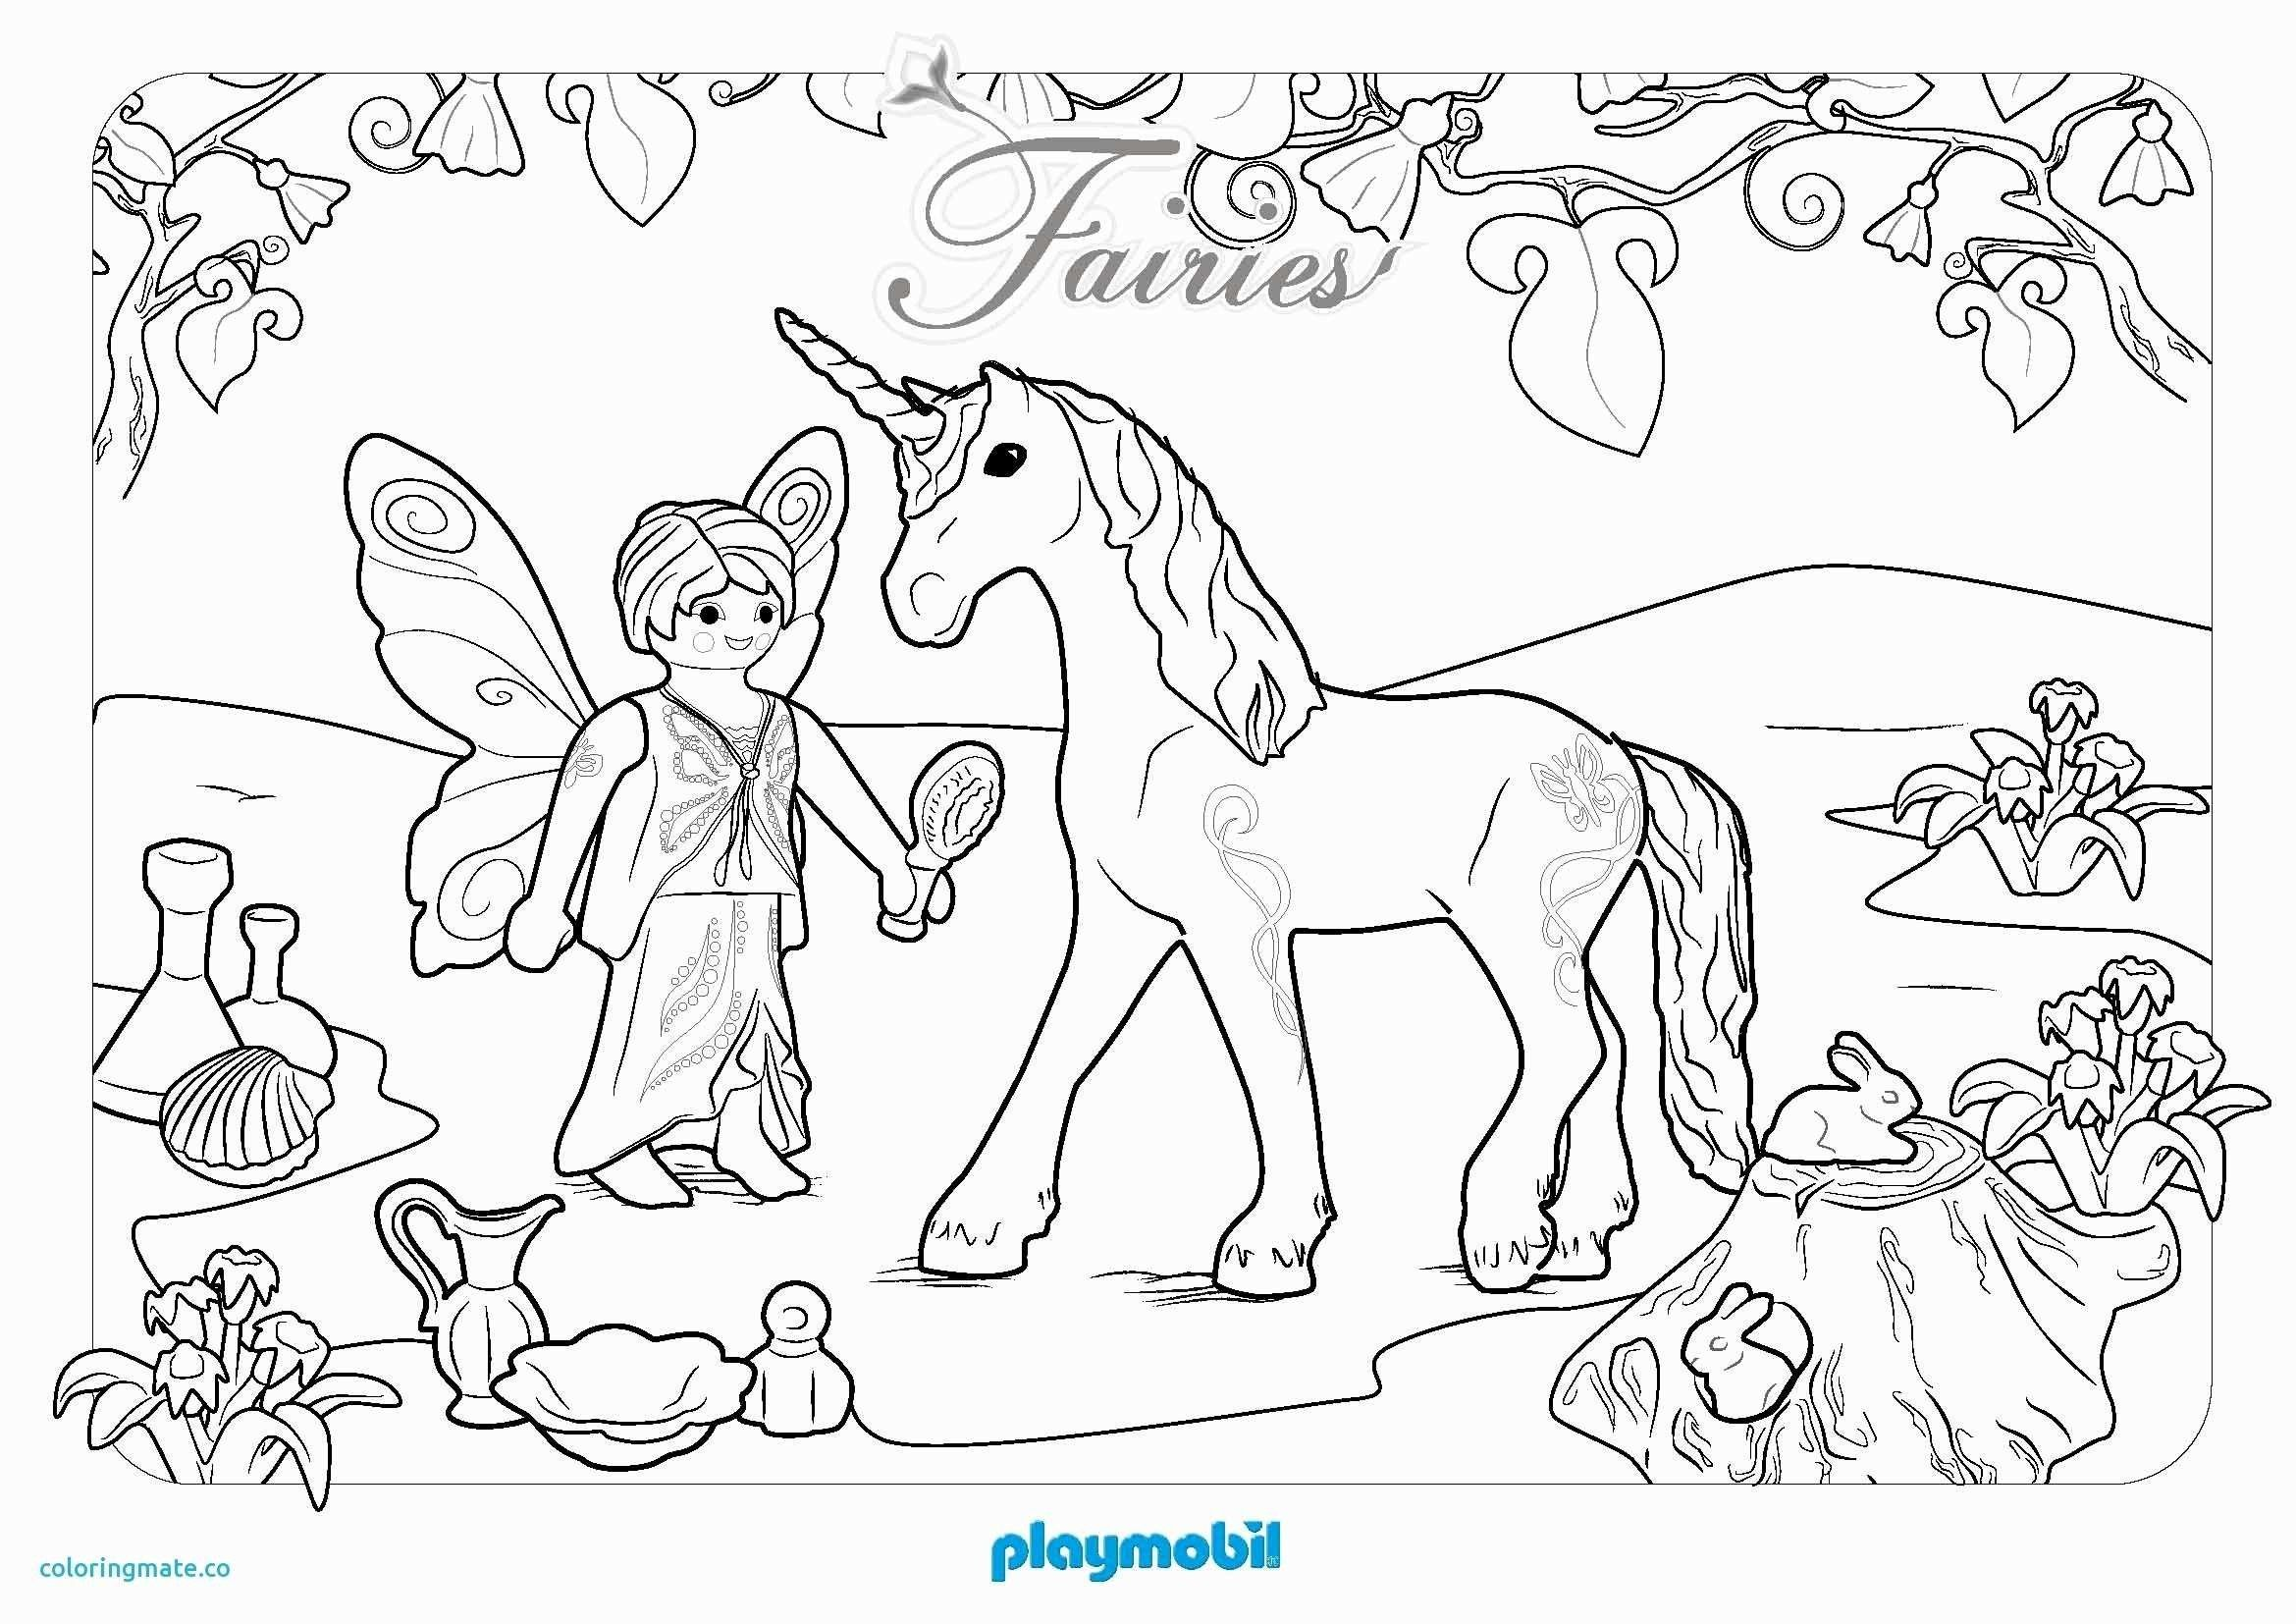 Coloriage Animaux Licorne Unique Coloriage Animaux Licorne Coloriage Licorne Inspire Coloriage Princesses Coloring Pages Pixel Art Coloring Pages For Kids